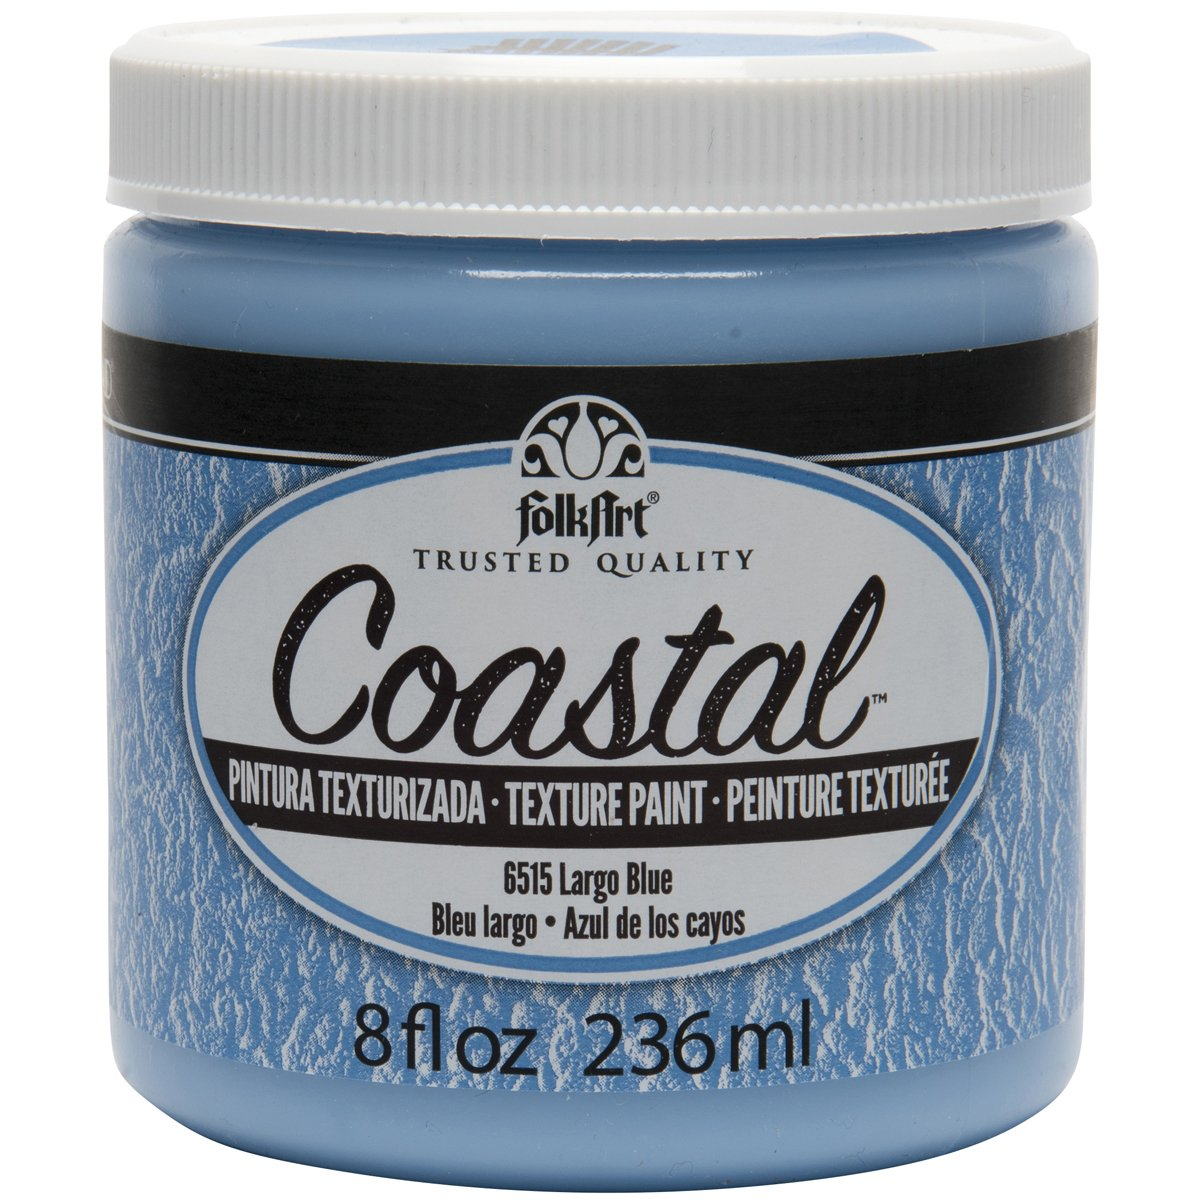 FolkArt Coastal Texture Paint in Assorted Colors (8 ounce), Largo Blue